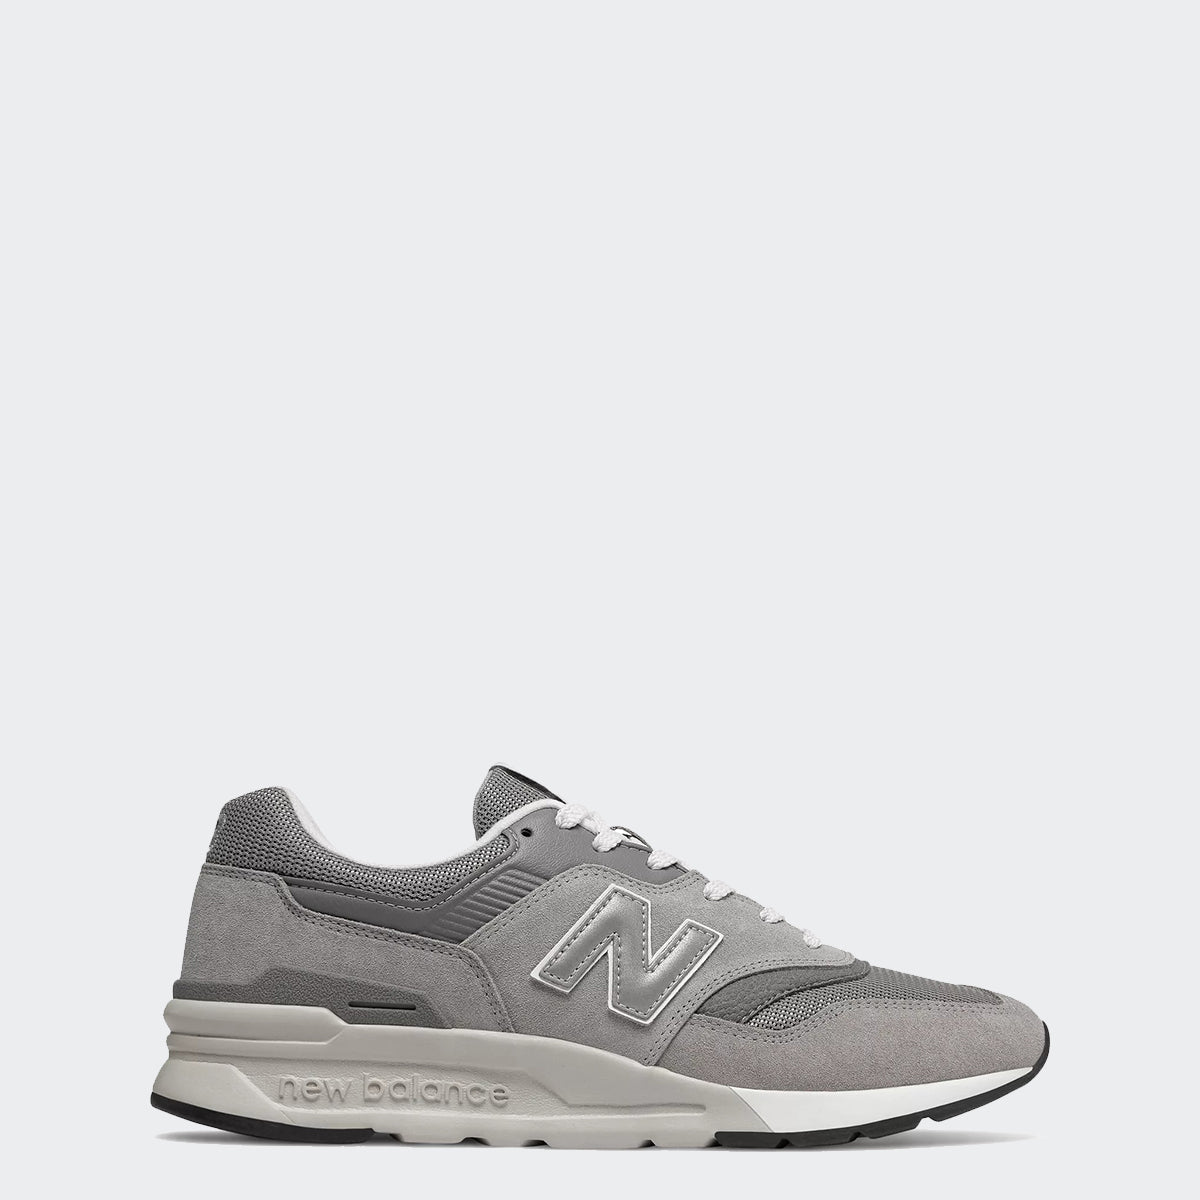 Men's New Balance 997H Shoes Marblehead with Silver CM997HCA